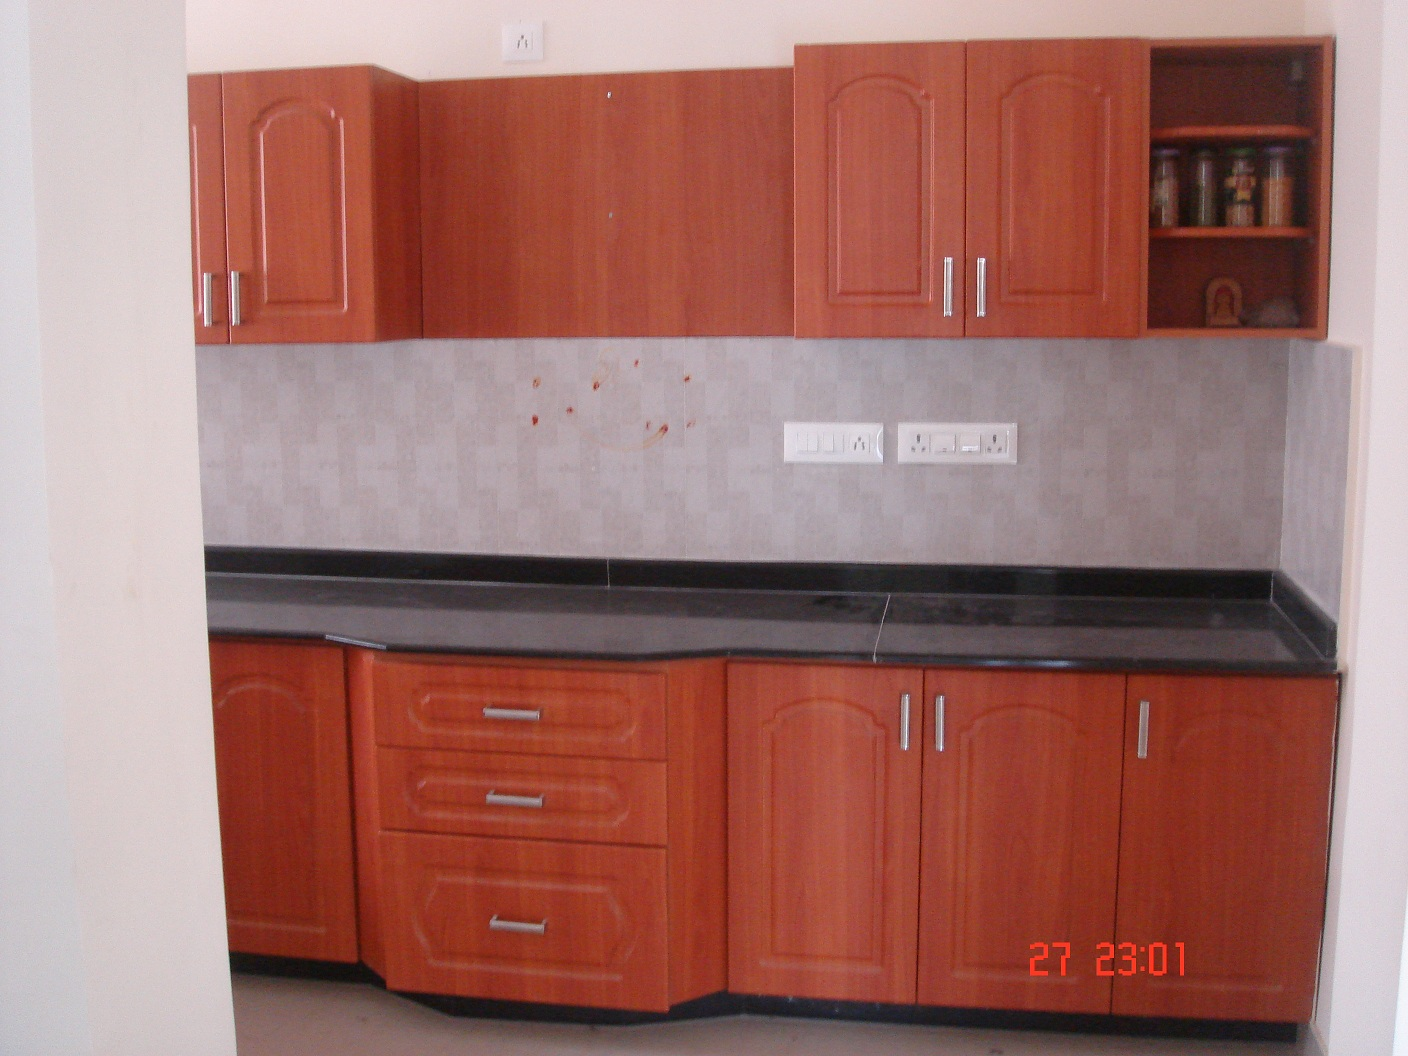 Modular kitchen cabinets kitchen design 2015 for Modular kitchen cupboard